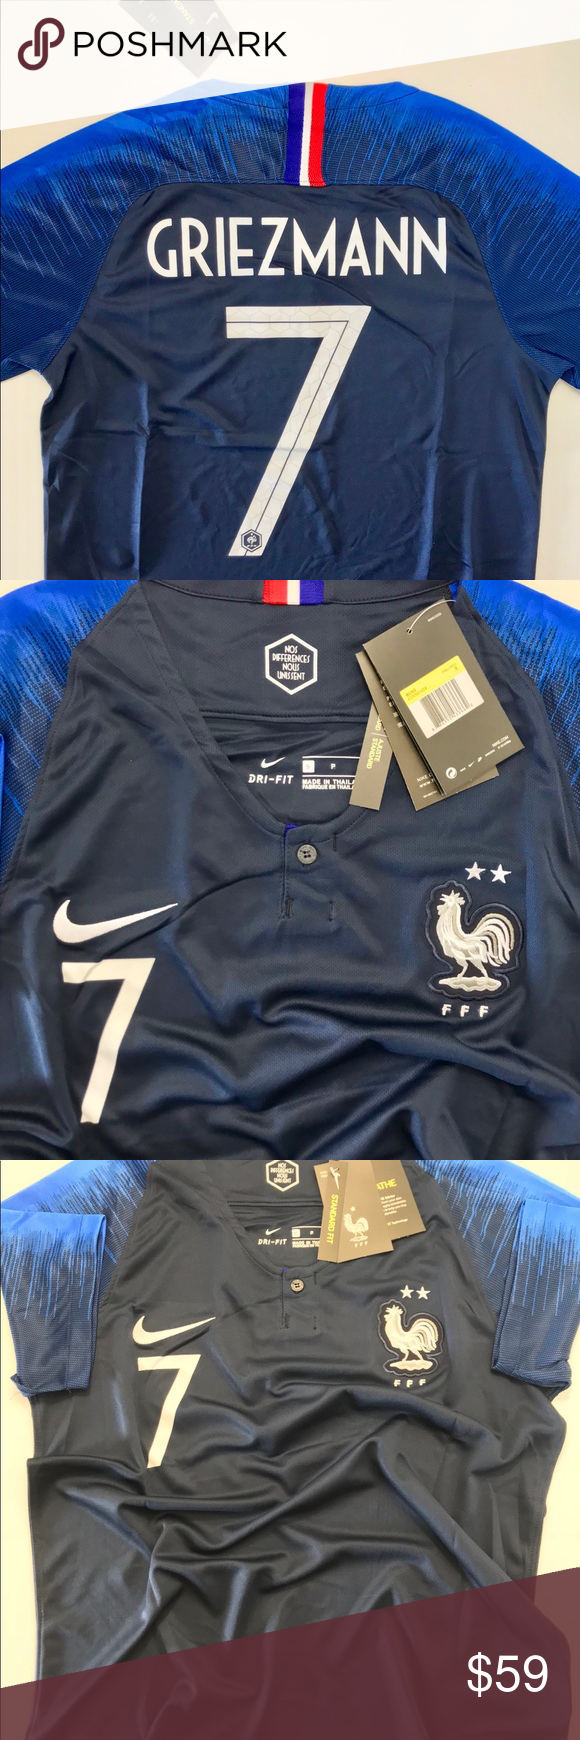 e372618c4ea GRIEZMANN FRANCE WORLD CUP SOCCER JERSEY 2 STARS *✅BRAND NEW WITH TAGS✅ *